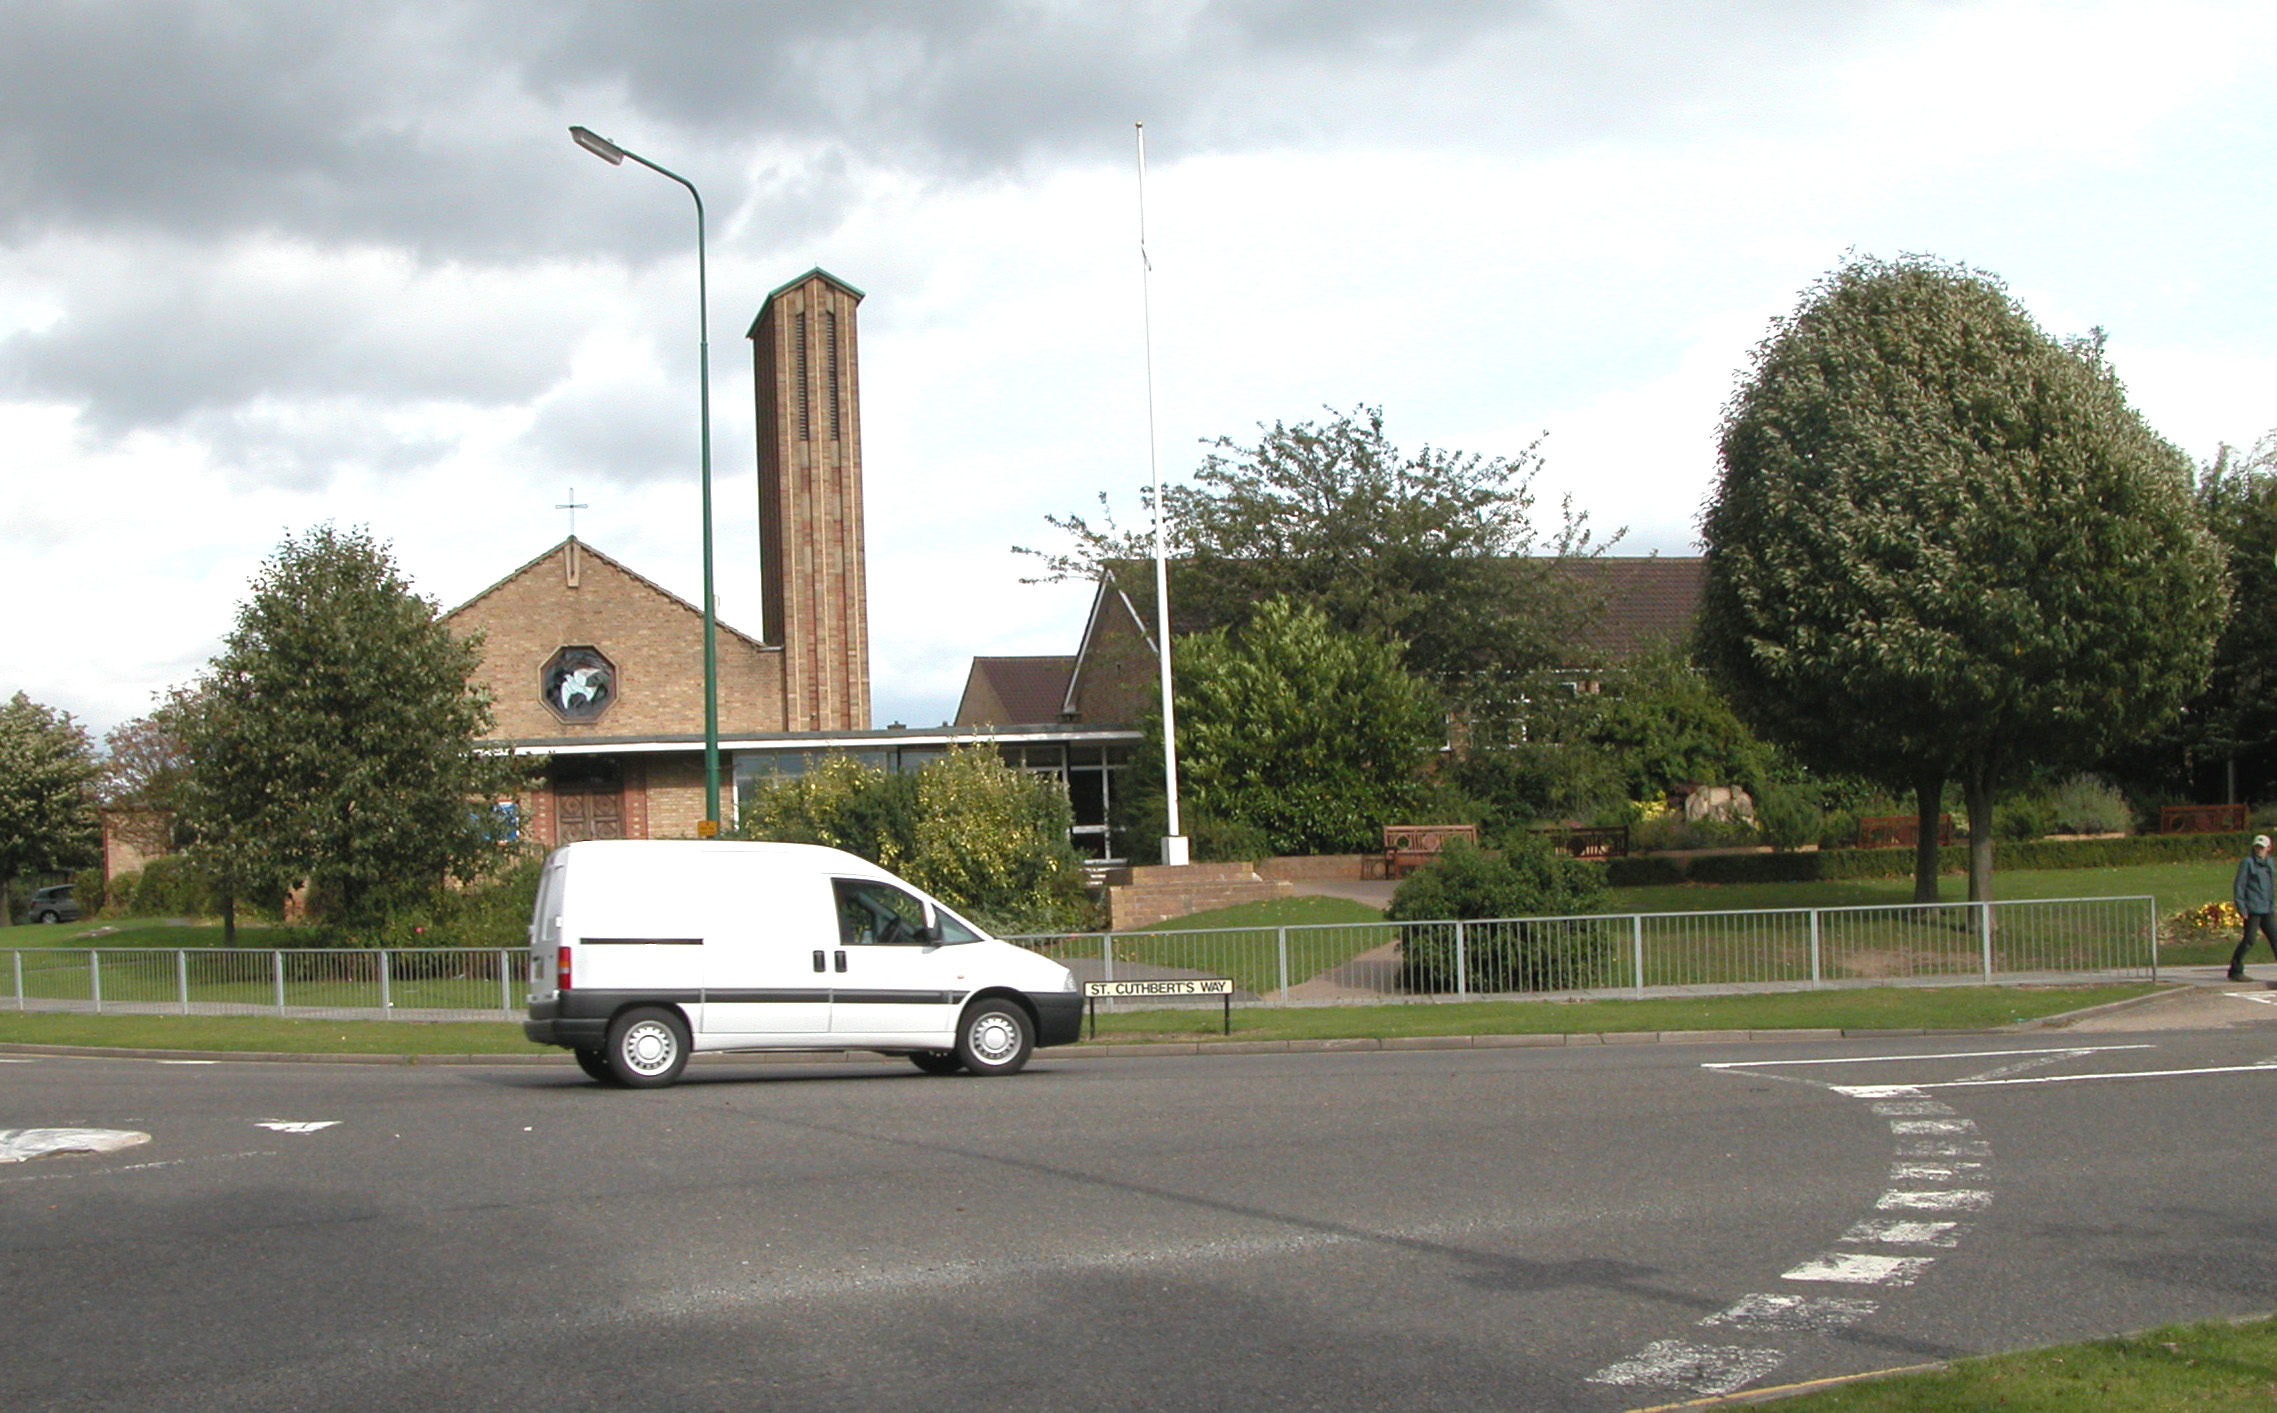 St. Clare's Church Celebrates 60 years